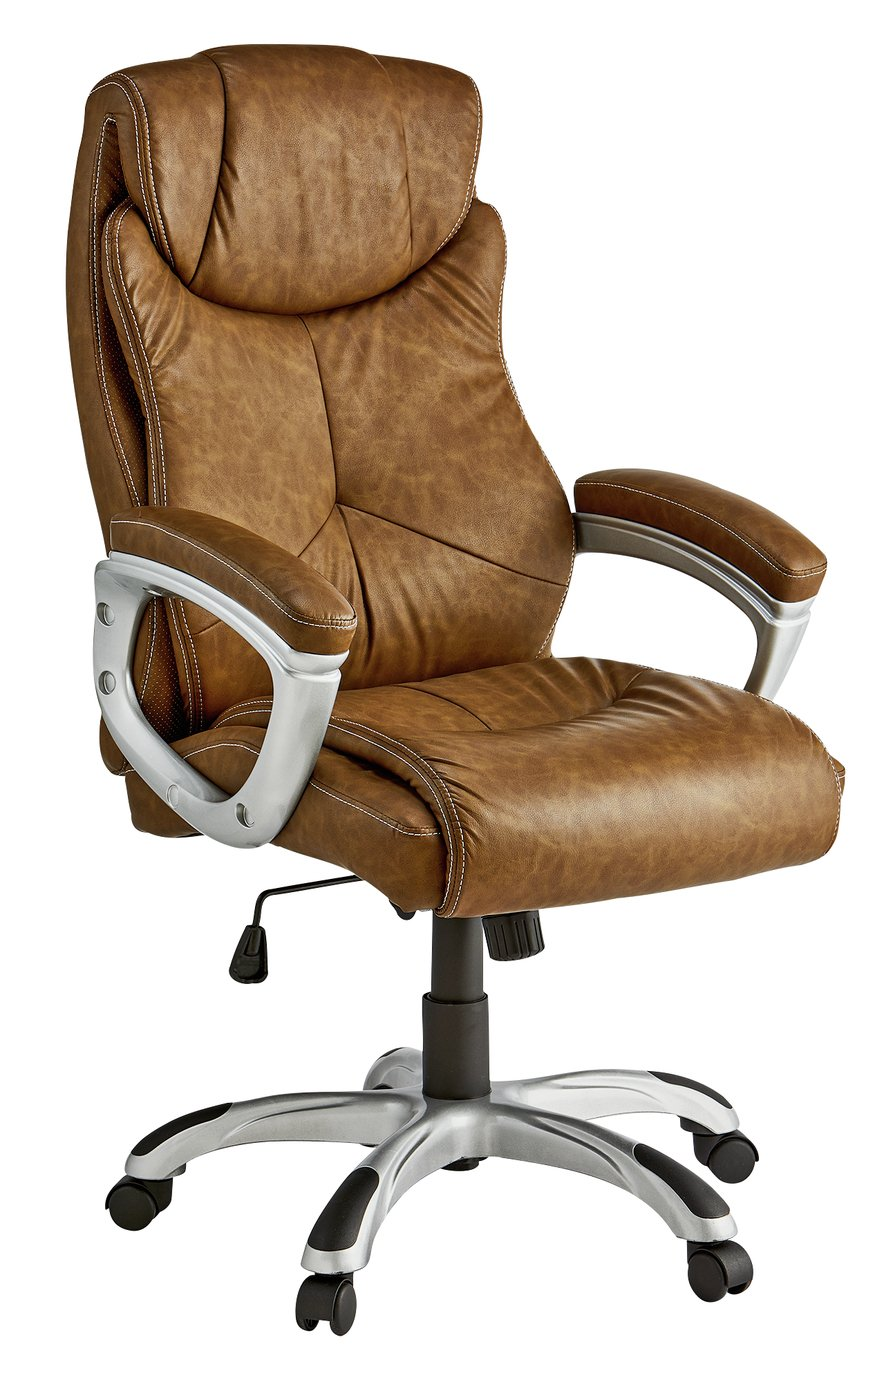 office chairs uk dining room chair covers desk argos x rocker executive height adjustable